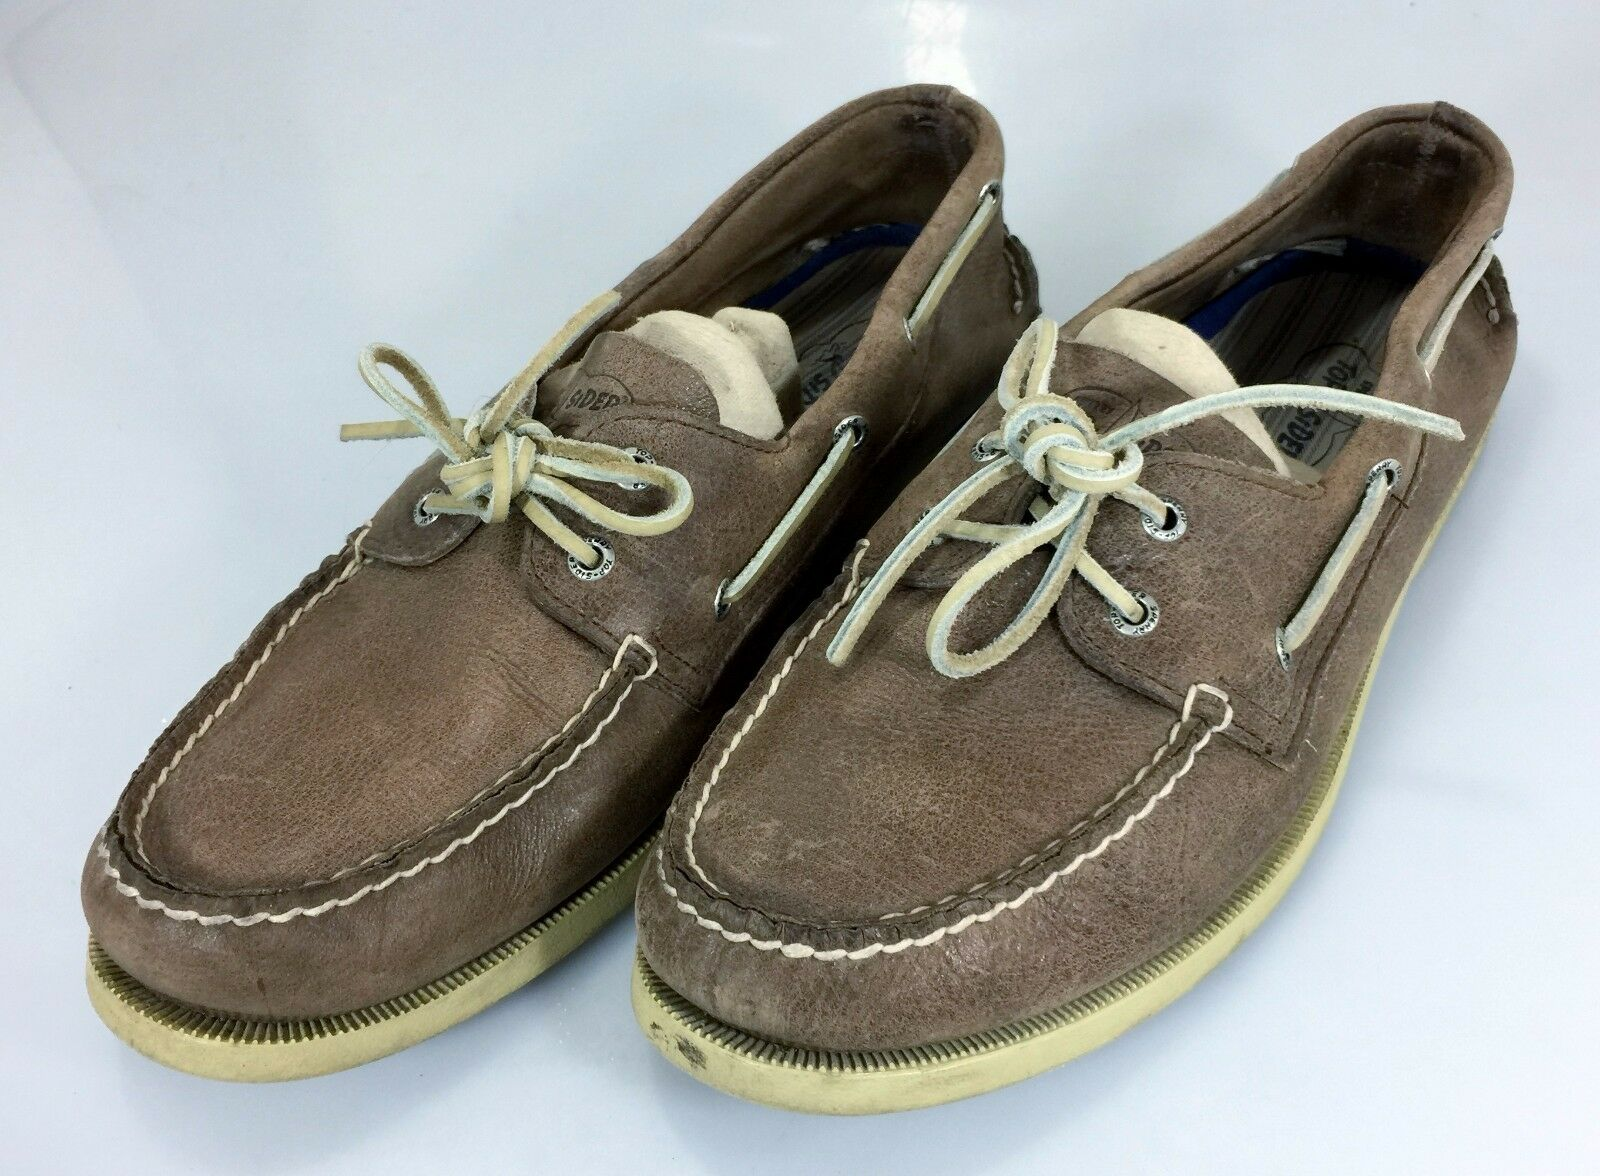 Sperry Top-Siders 13M Mens Boat Deck shoes Brown Leather 47 EU